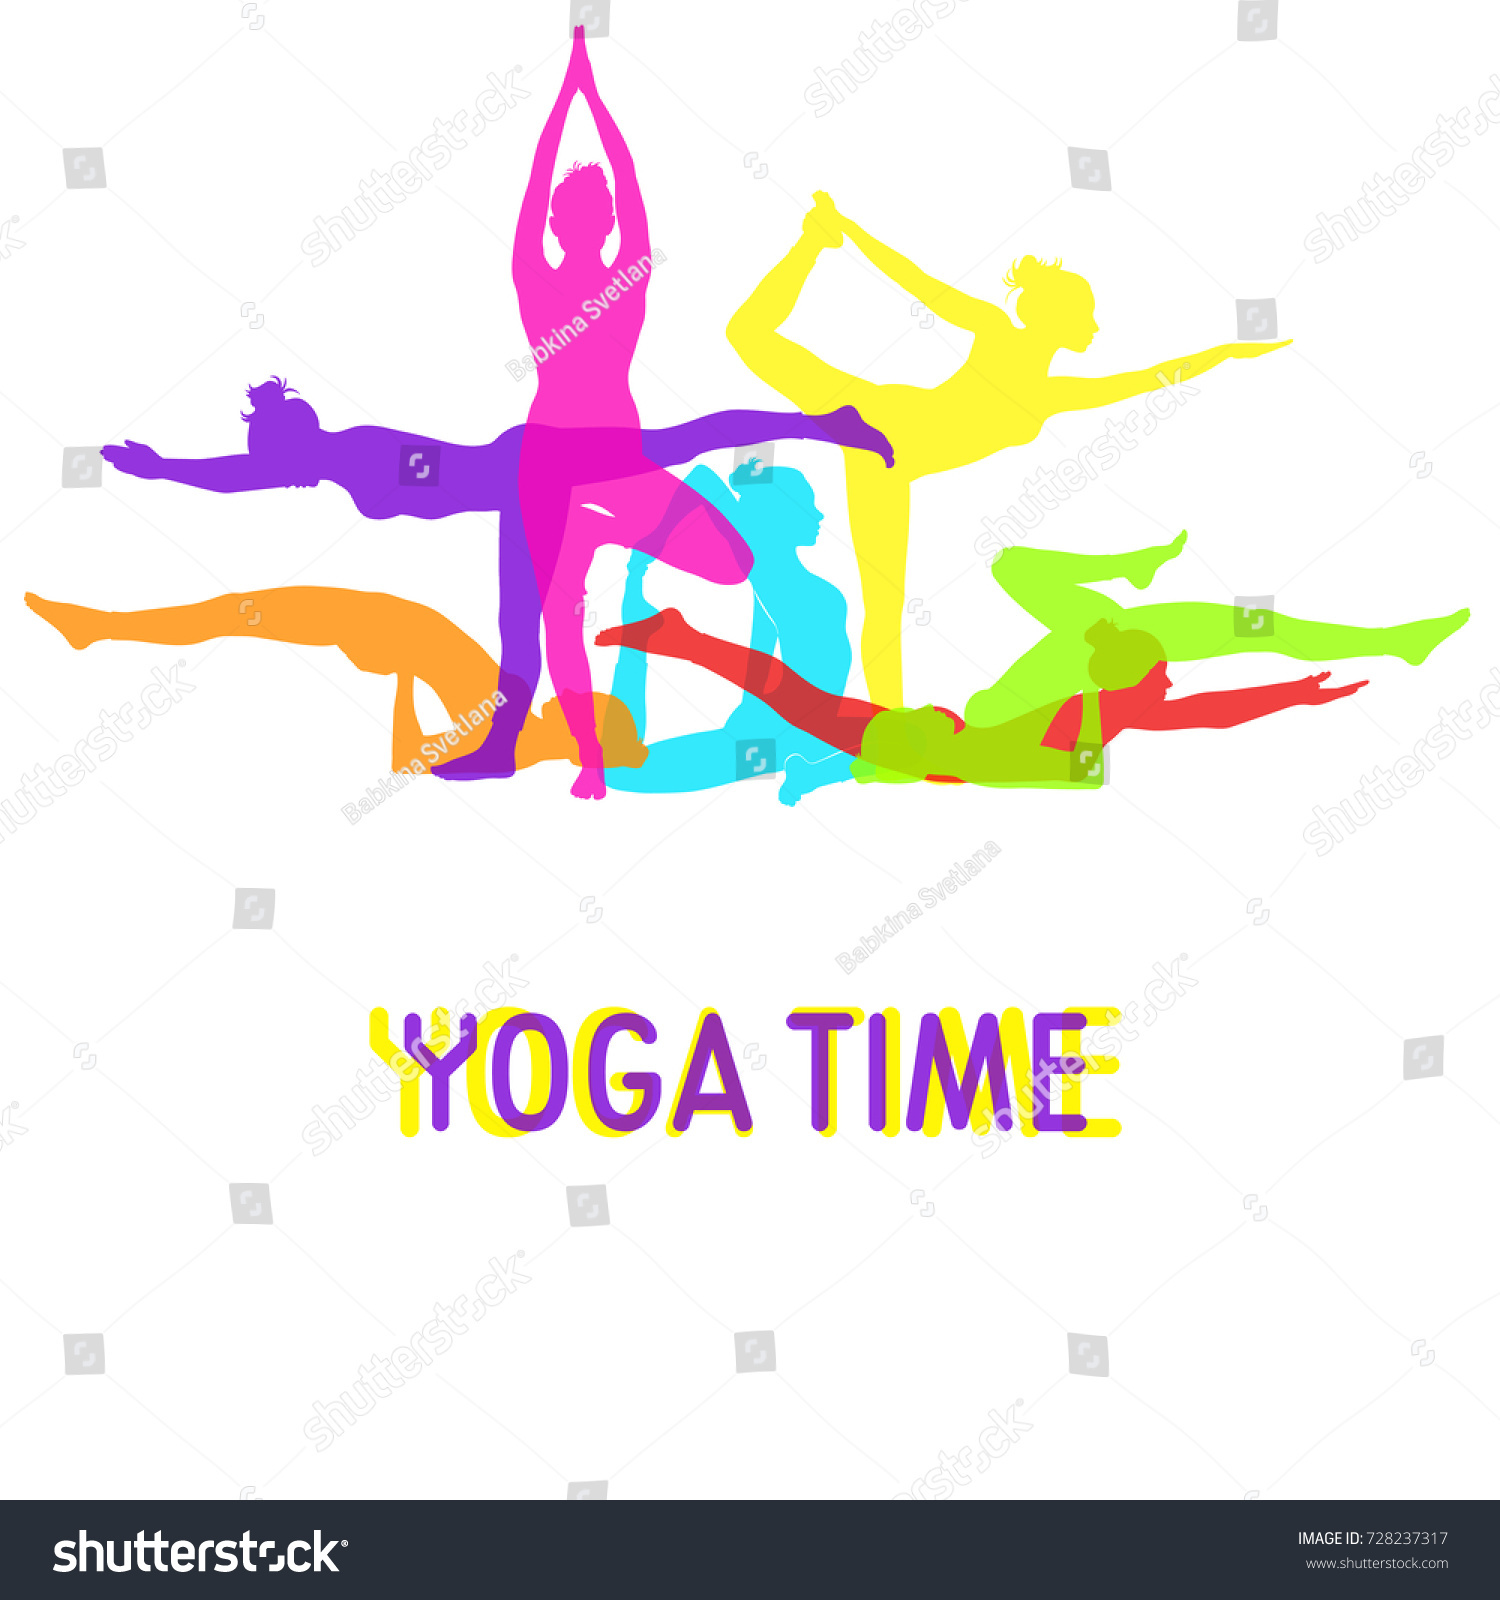 Silhouettes Of Woman Doing Yoga Mixed Together For Banner Design Colored Vector Icons